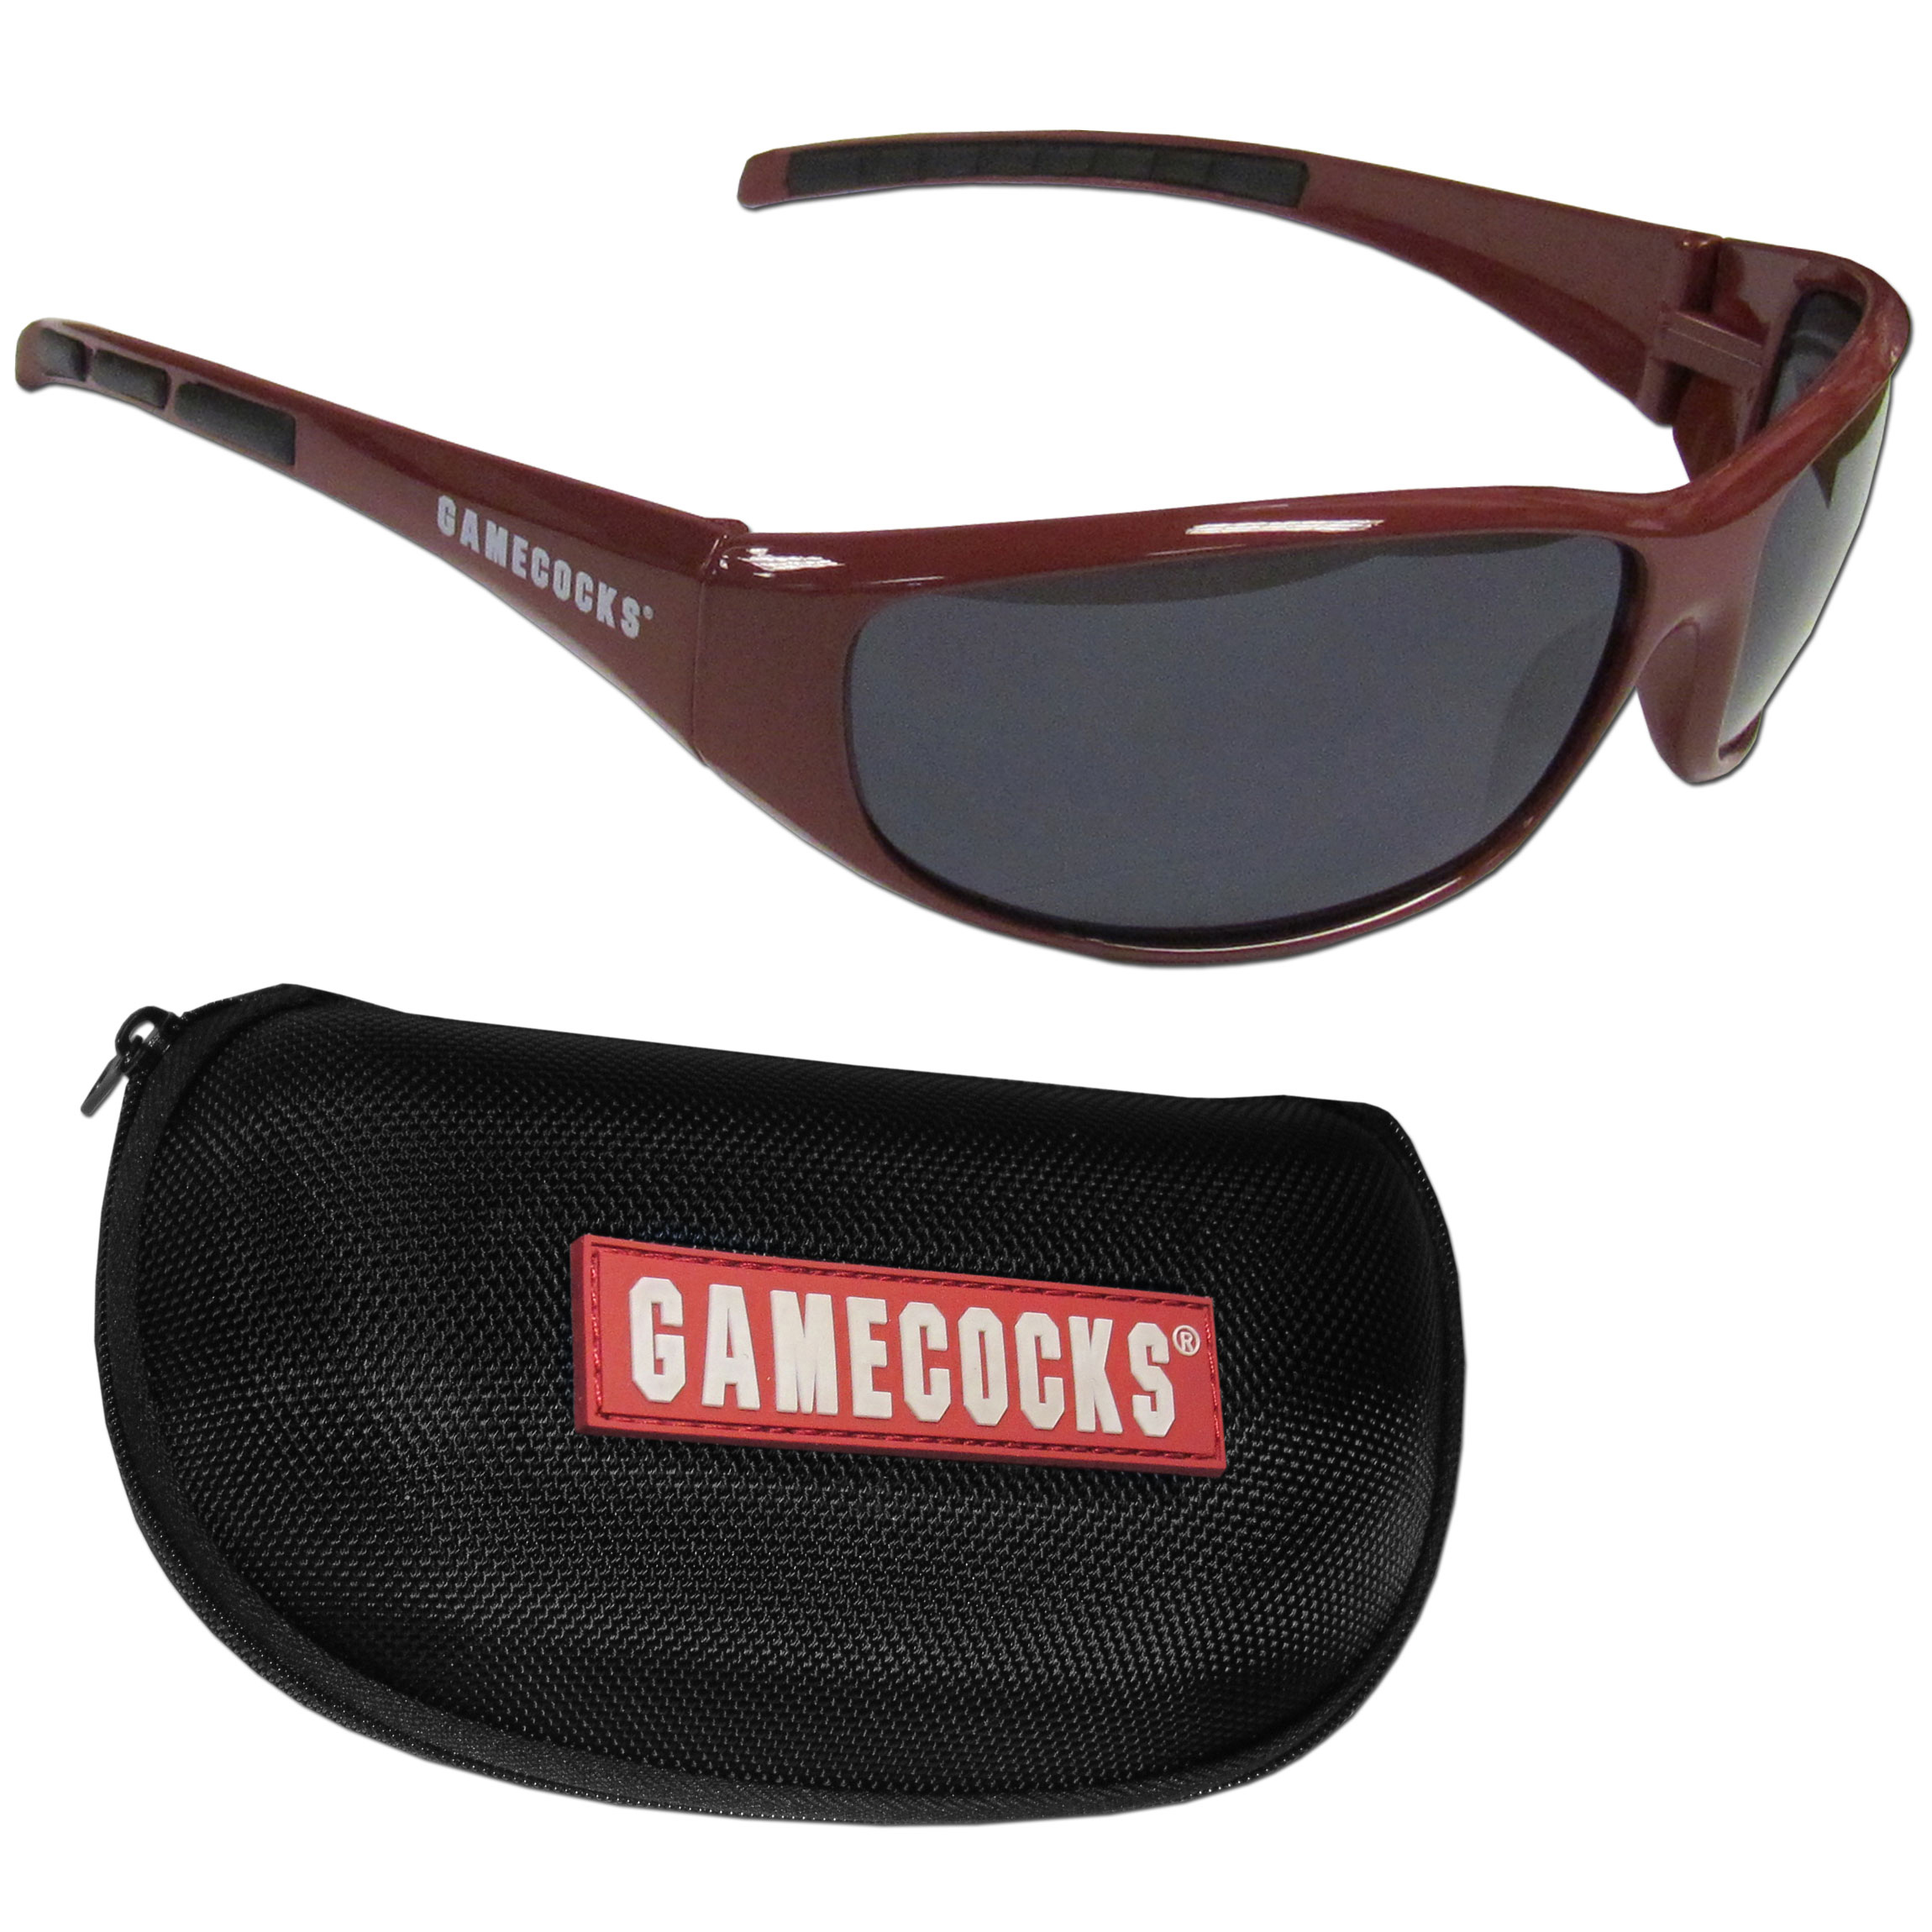 S. Carolina Gamecocks Wrap Sunglass and Case Set - This great set includes a high quality pair of S. Carolina Gamecocks wrap sunglasses and hard carrying case.